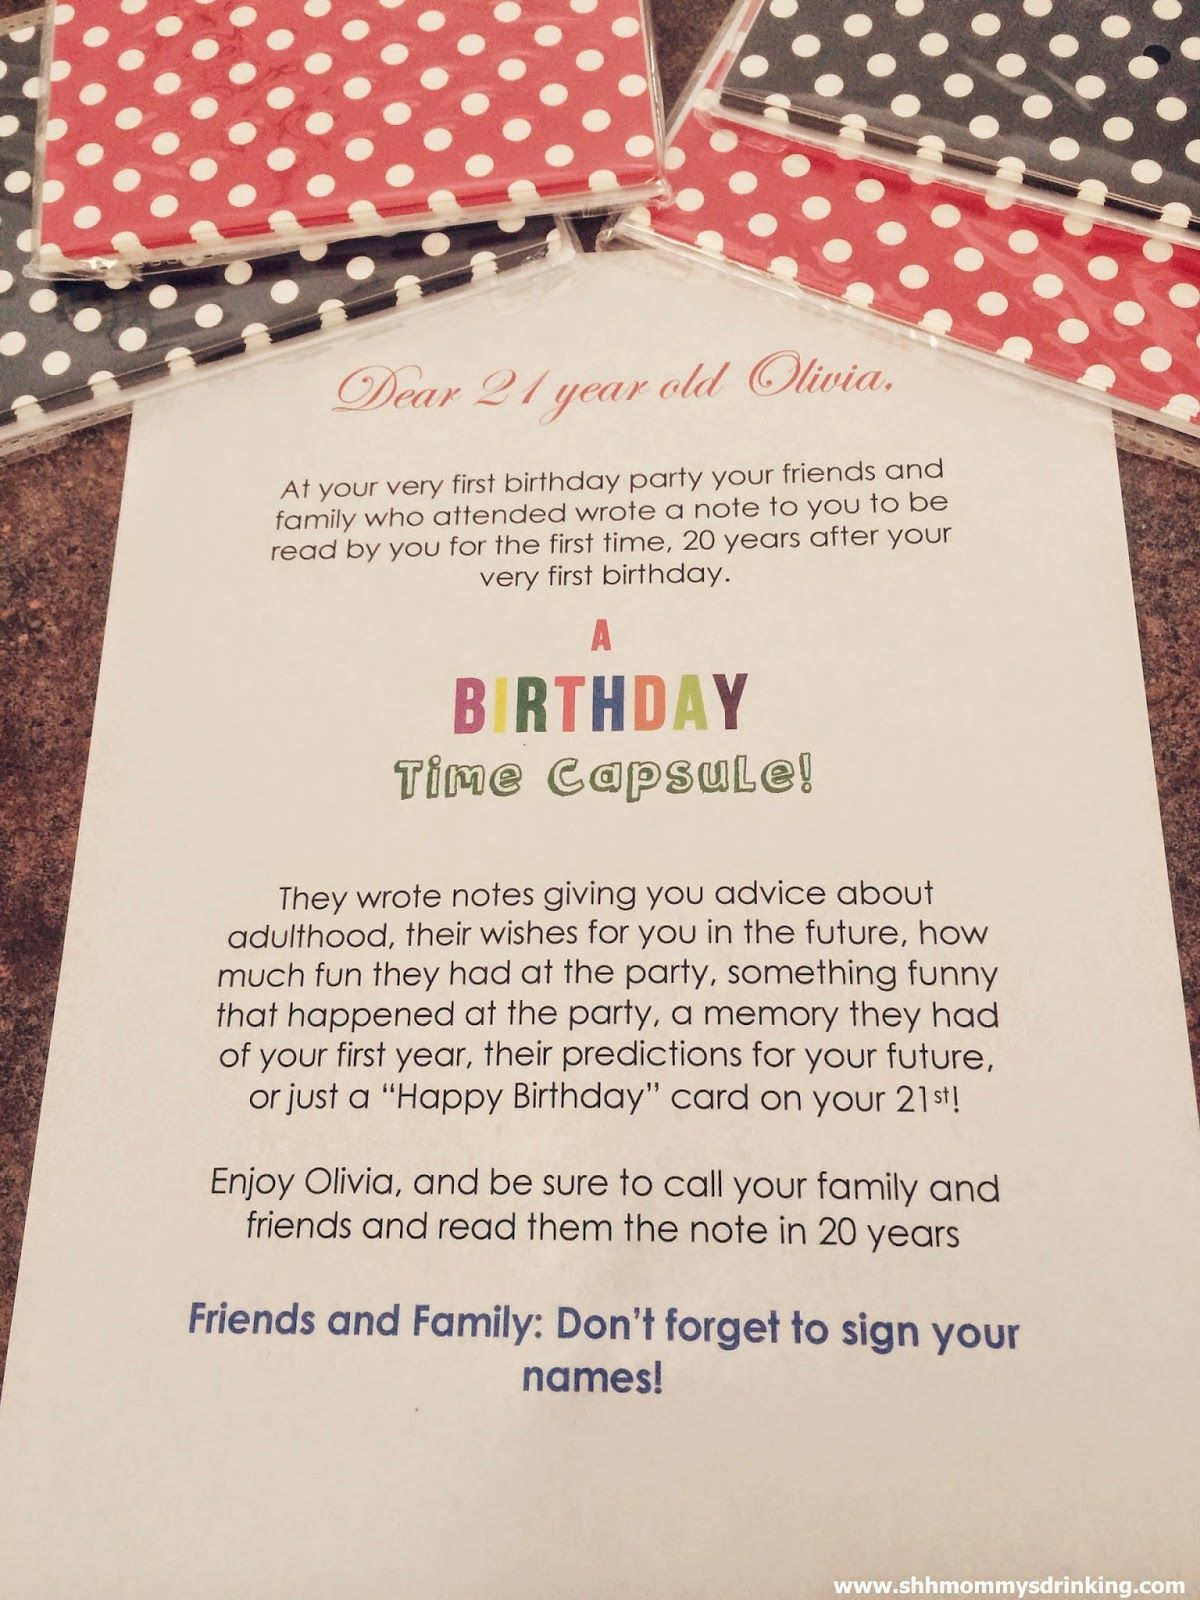 Birthday Time Capsule Note To The 1st Birthday Boy Or Girl From The